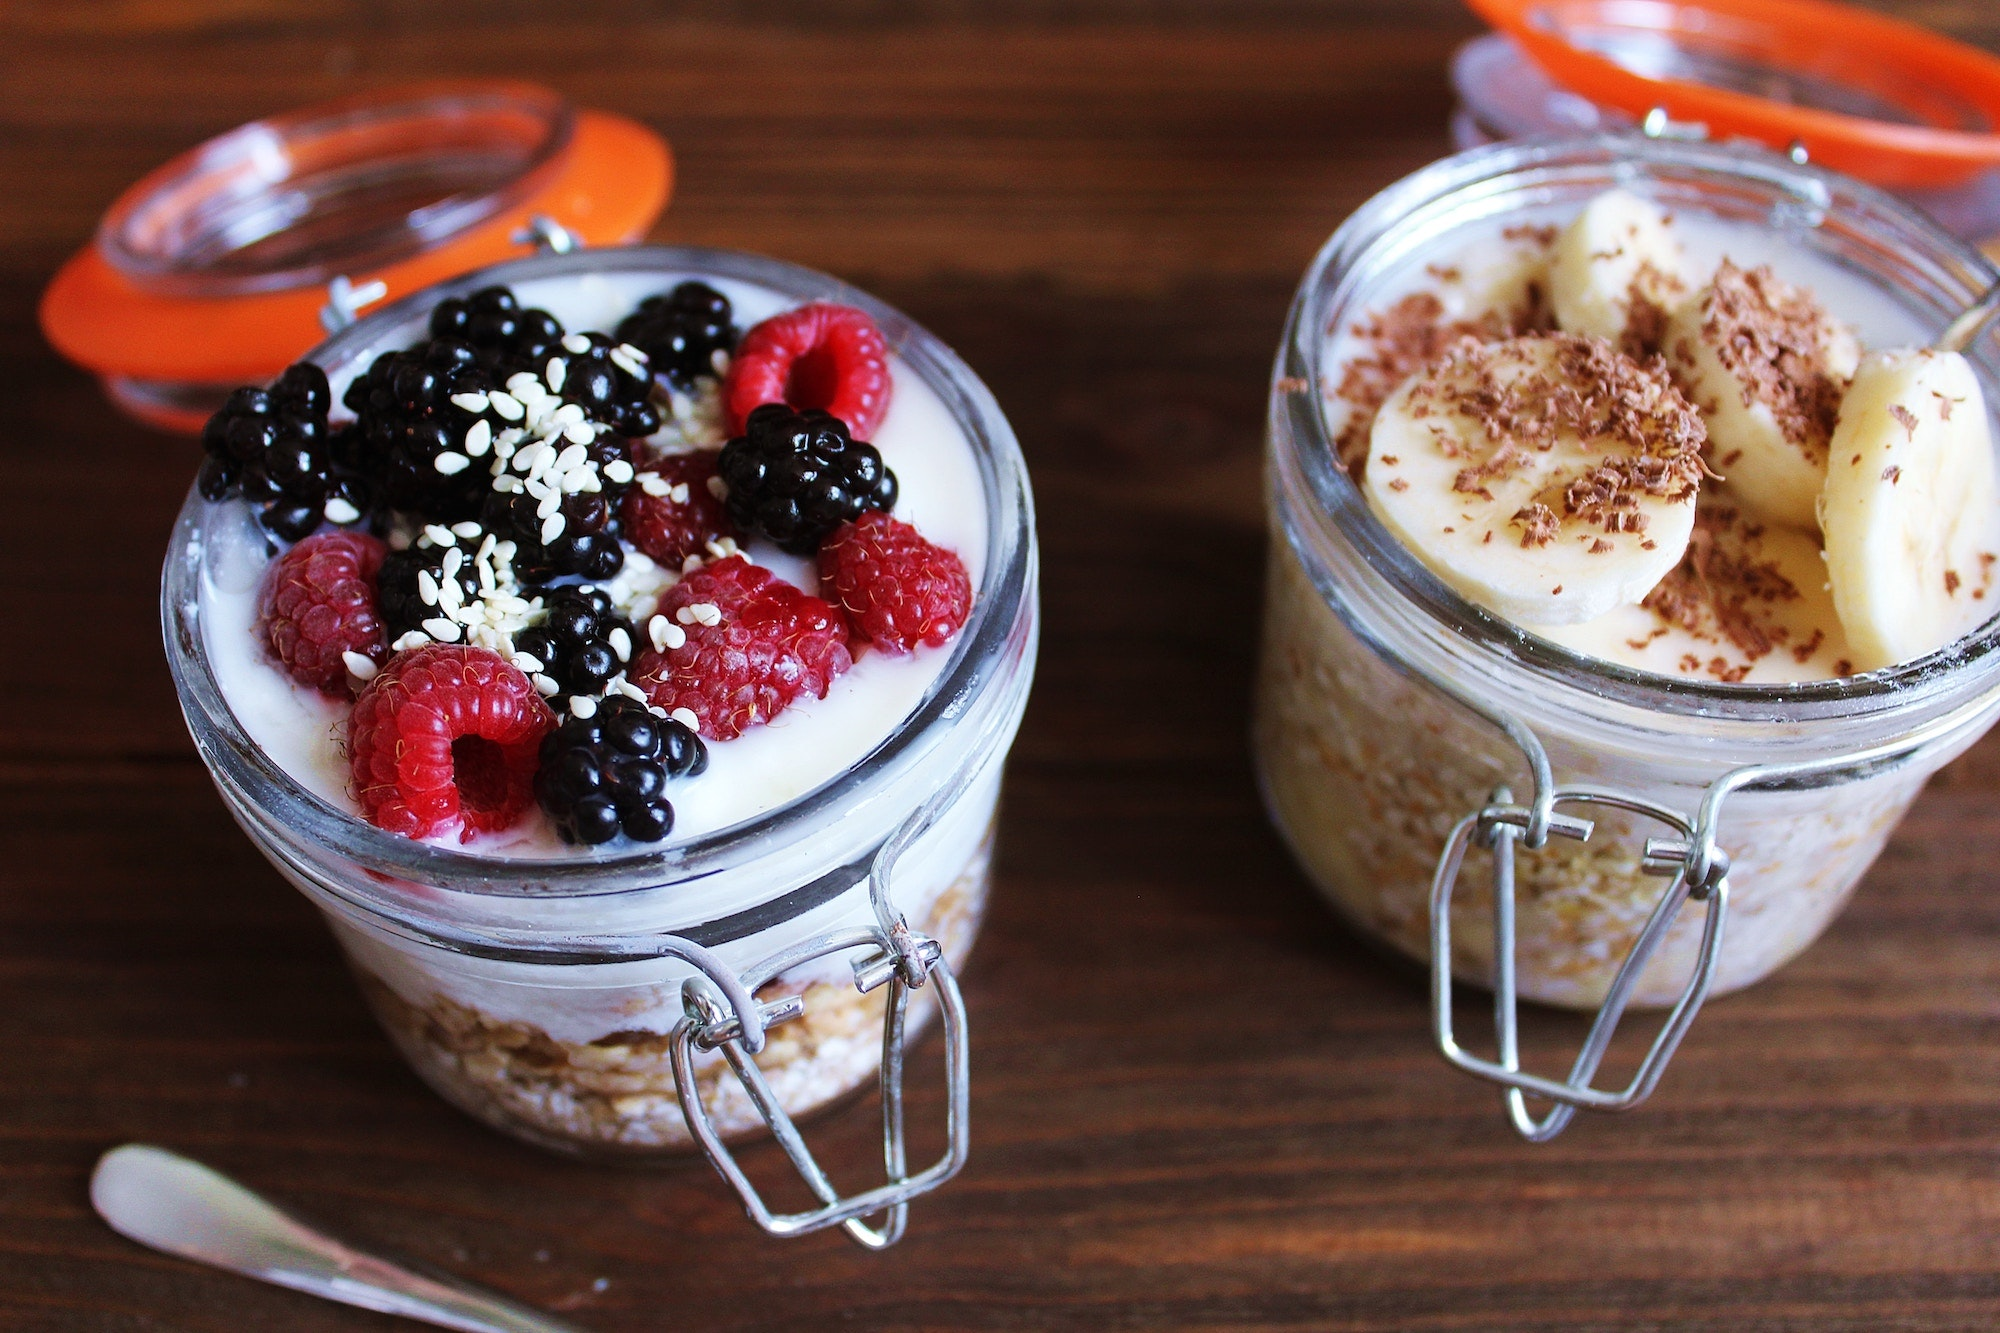 Greek yogurt is packed with probiotics (healthy bacteria that can help boost your immune system).